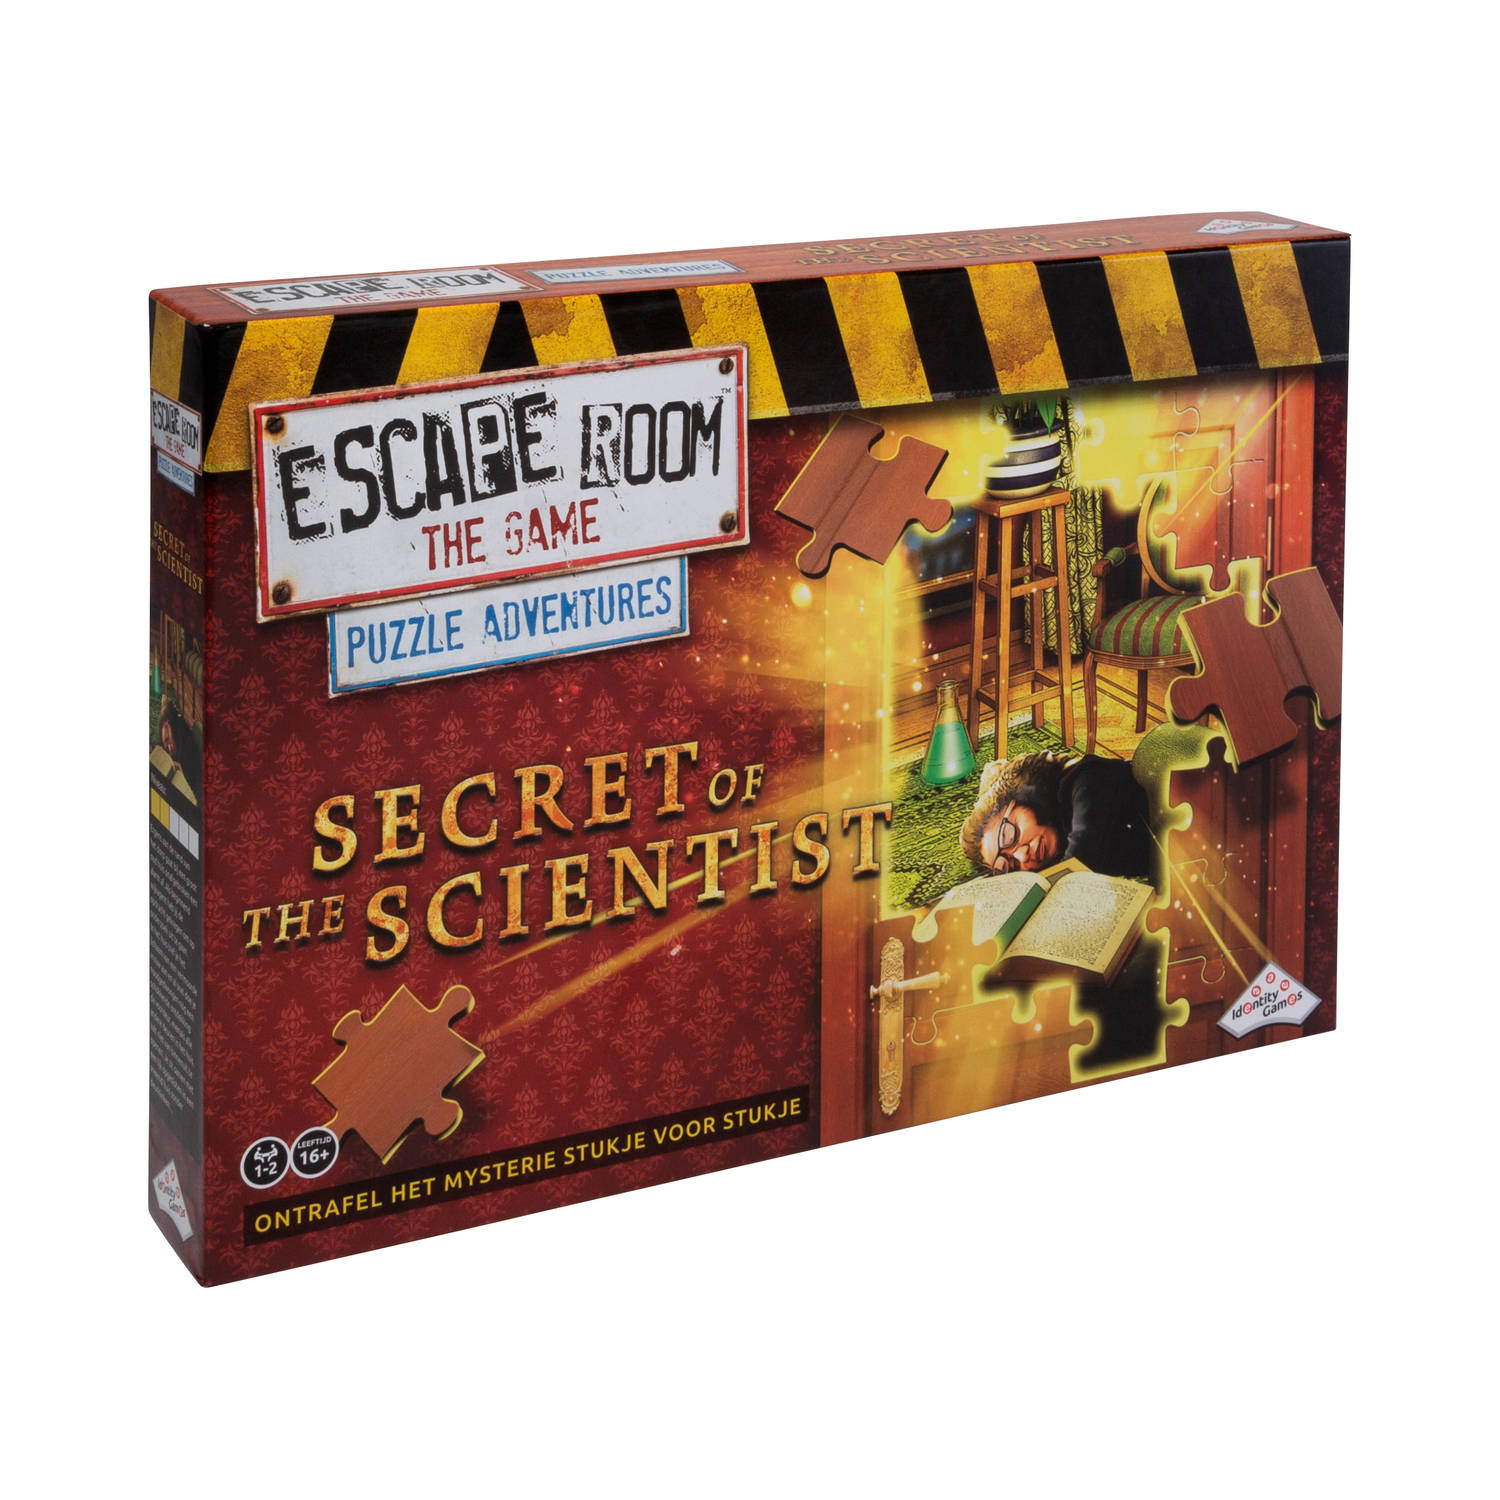 Korting Escape Room The Game Puzzle Adventures